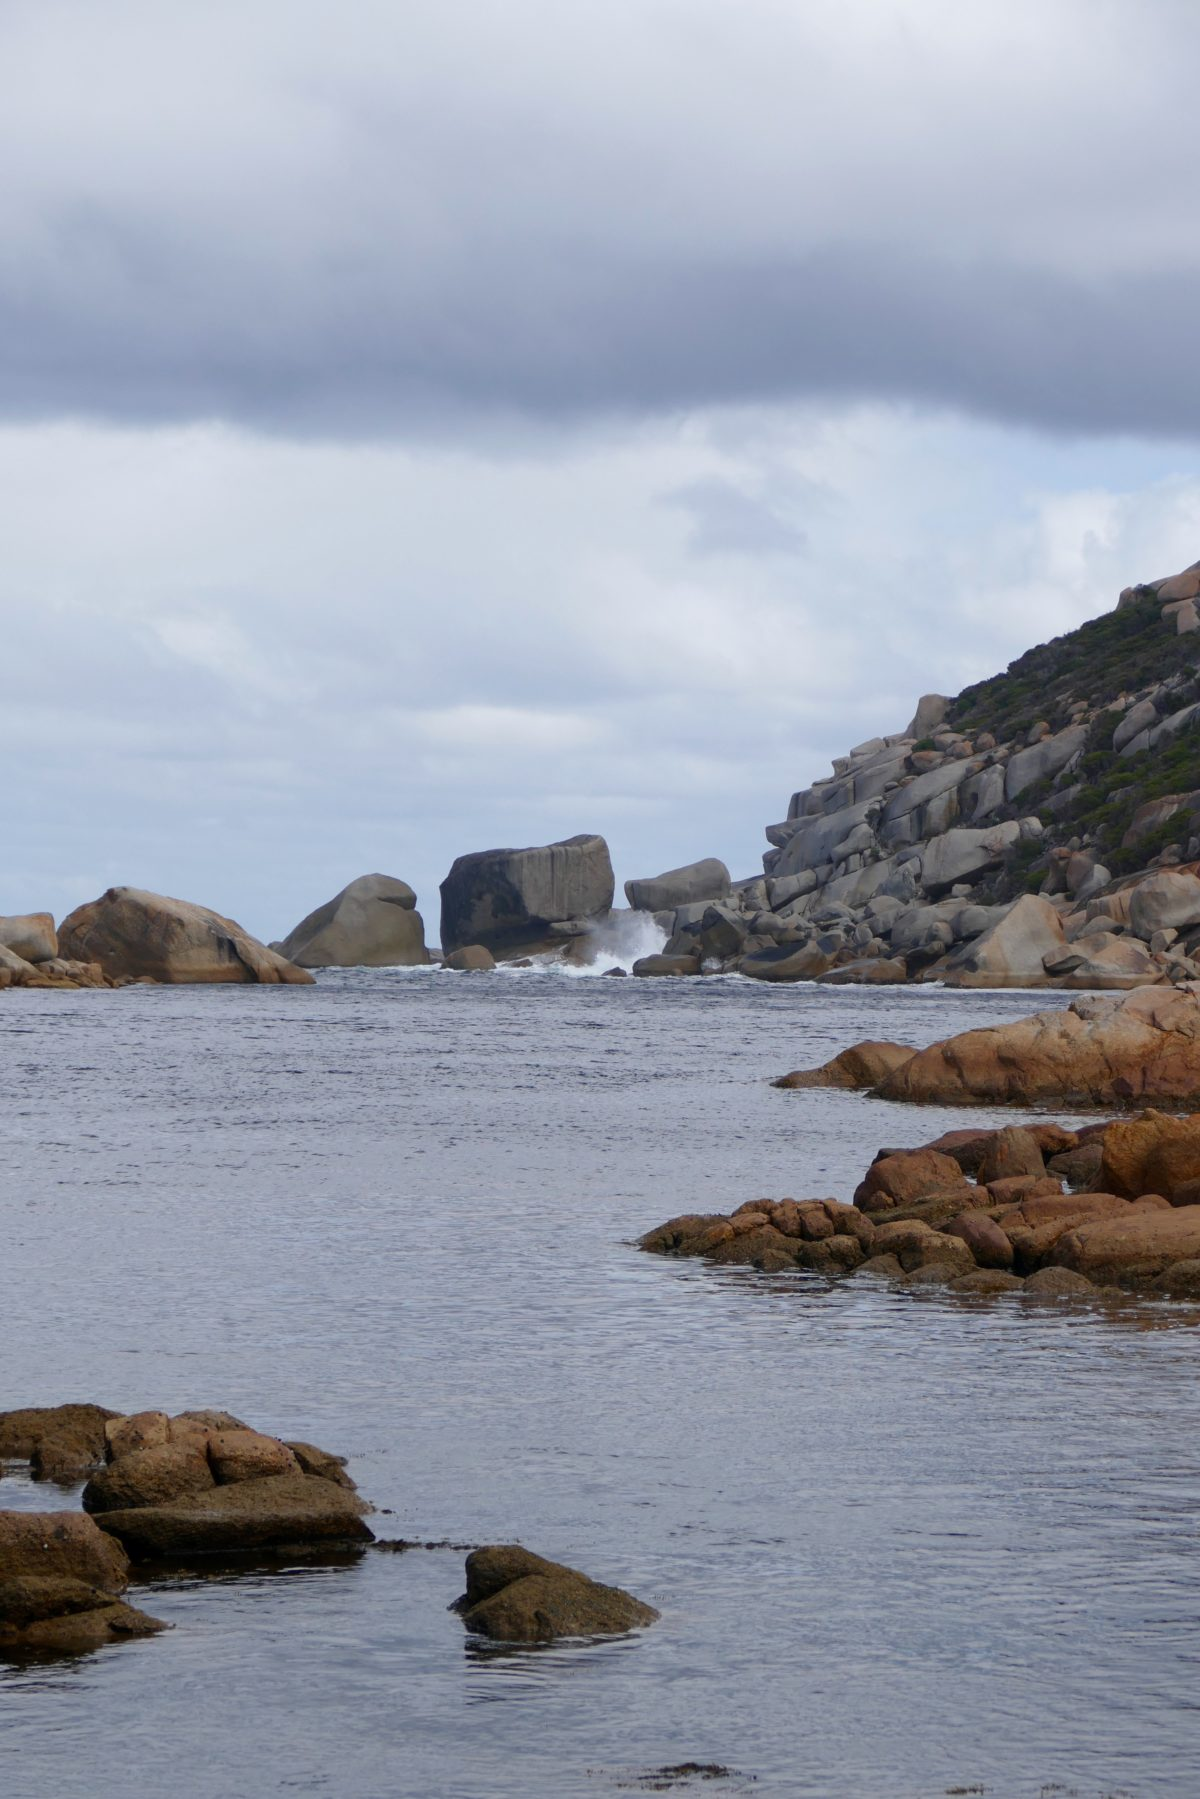 Waychinicup Inlet, meeting Southern Ocean. Calm day, Spring 2016